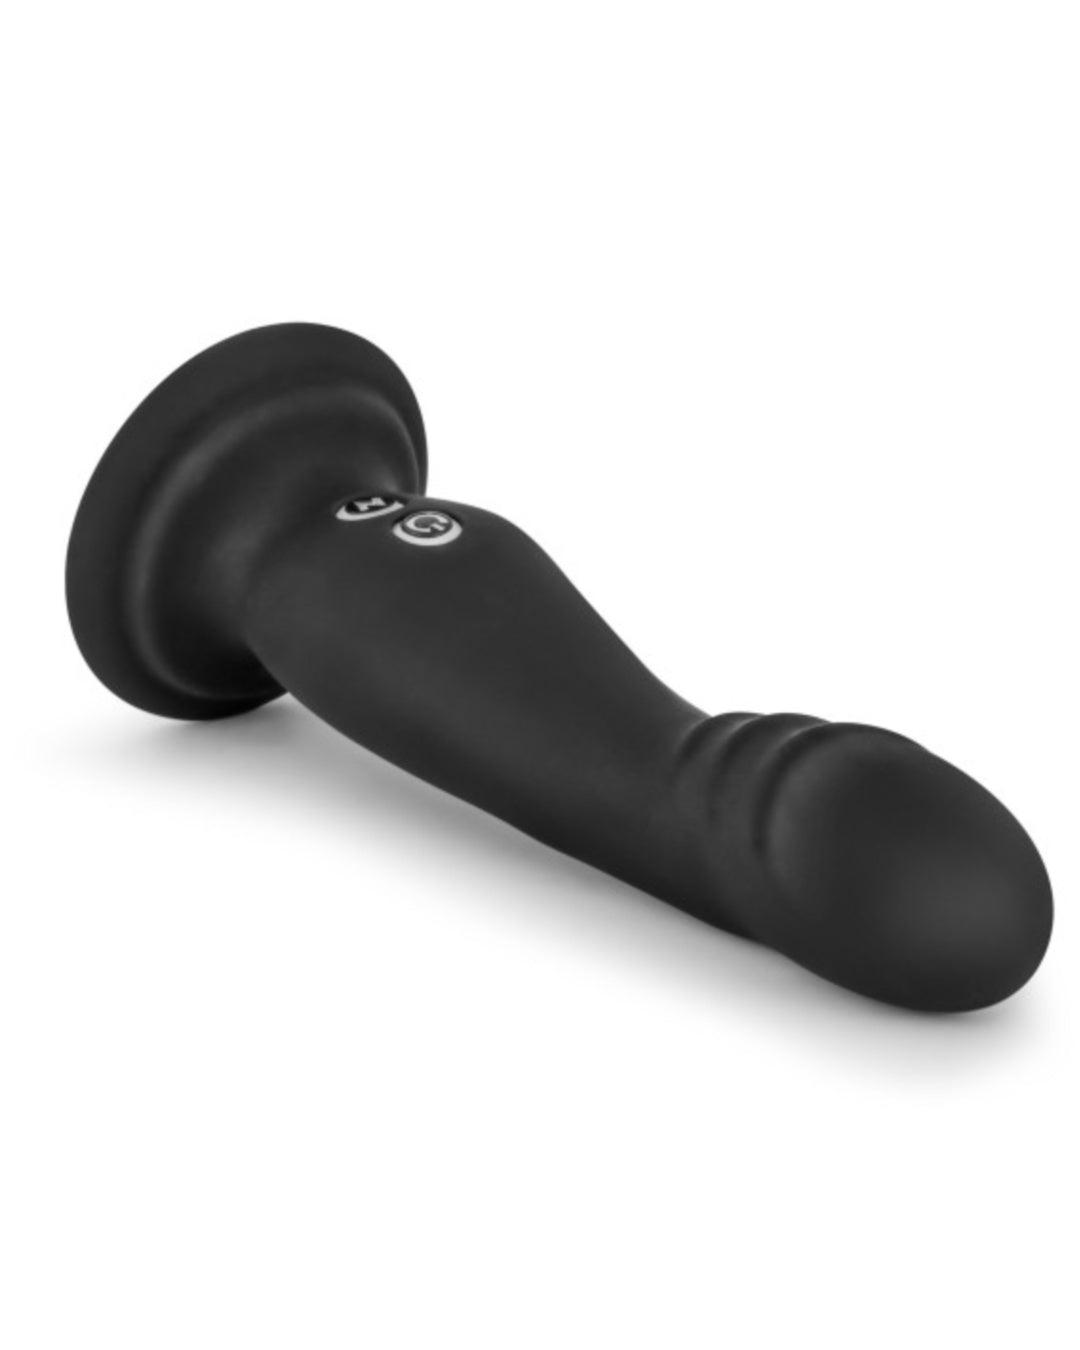 Impressions N1 Silicone G-Spot Vibrator with Suction Cup by Blush - Black